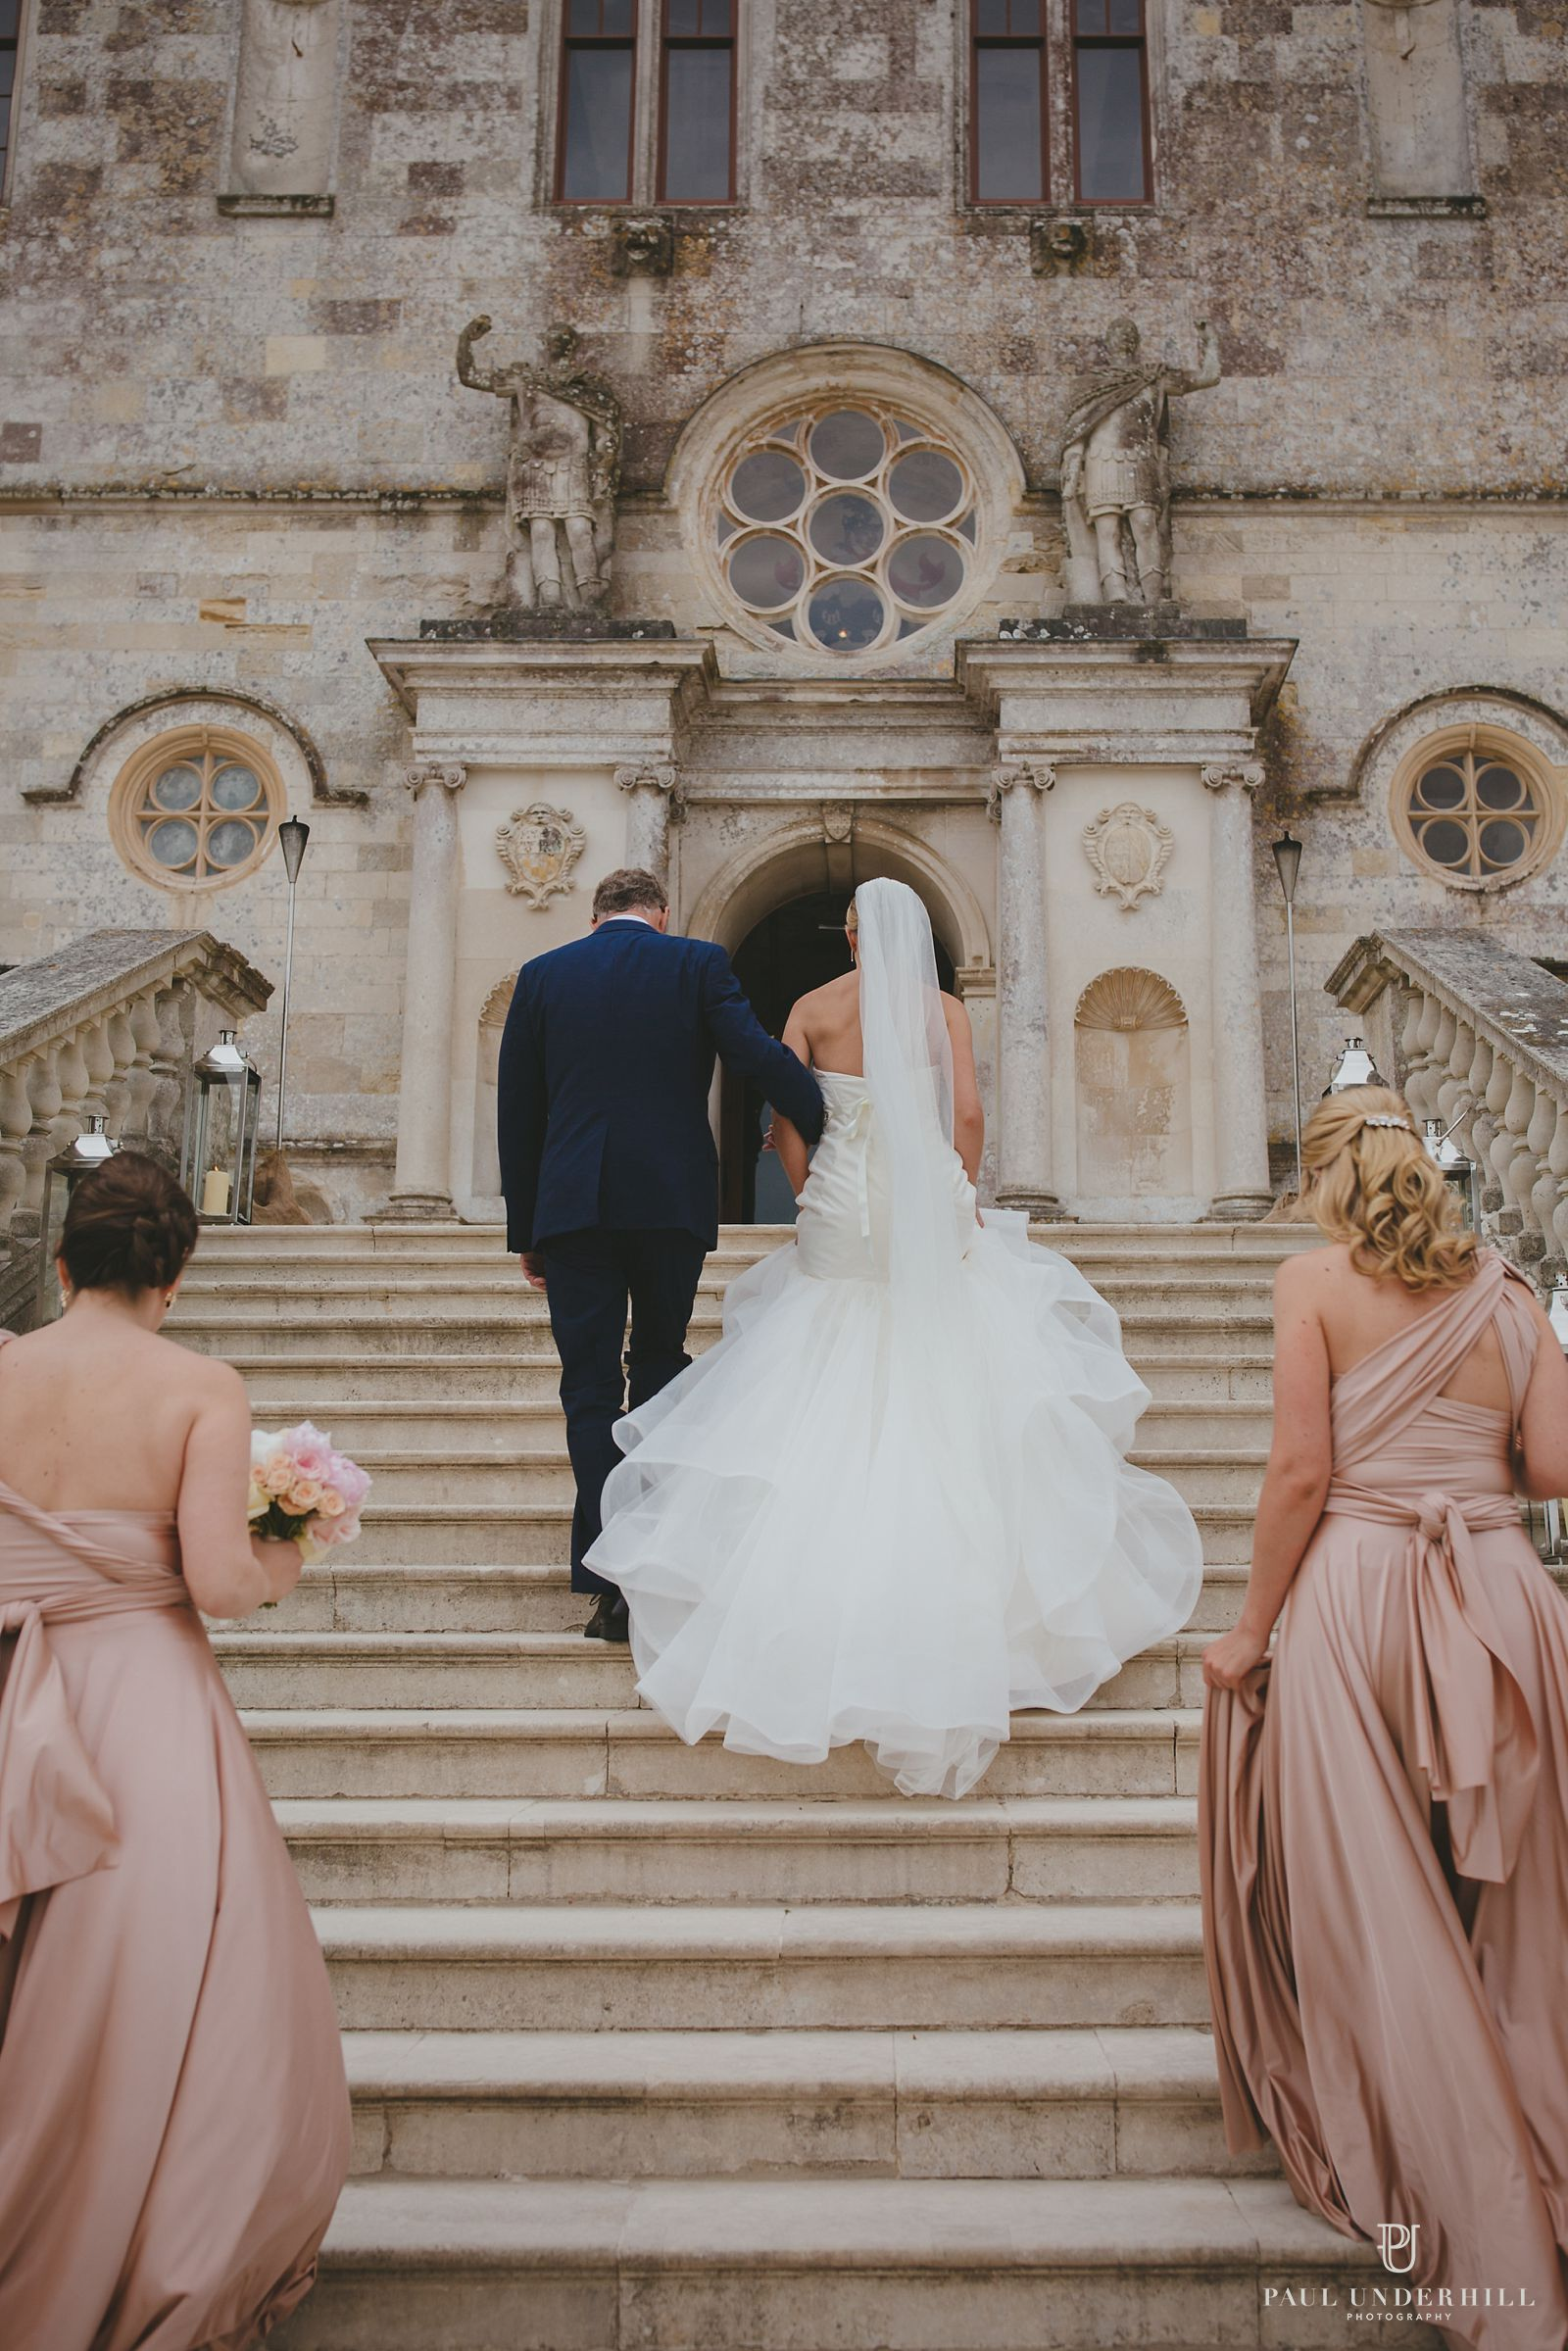 Lulworth Castle weddings in Dorset